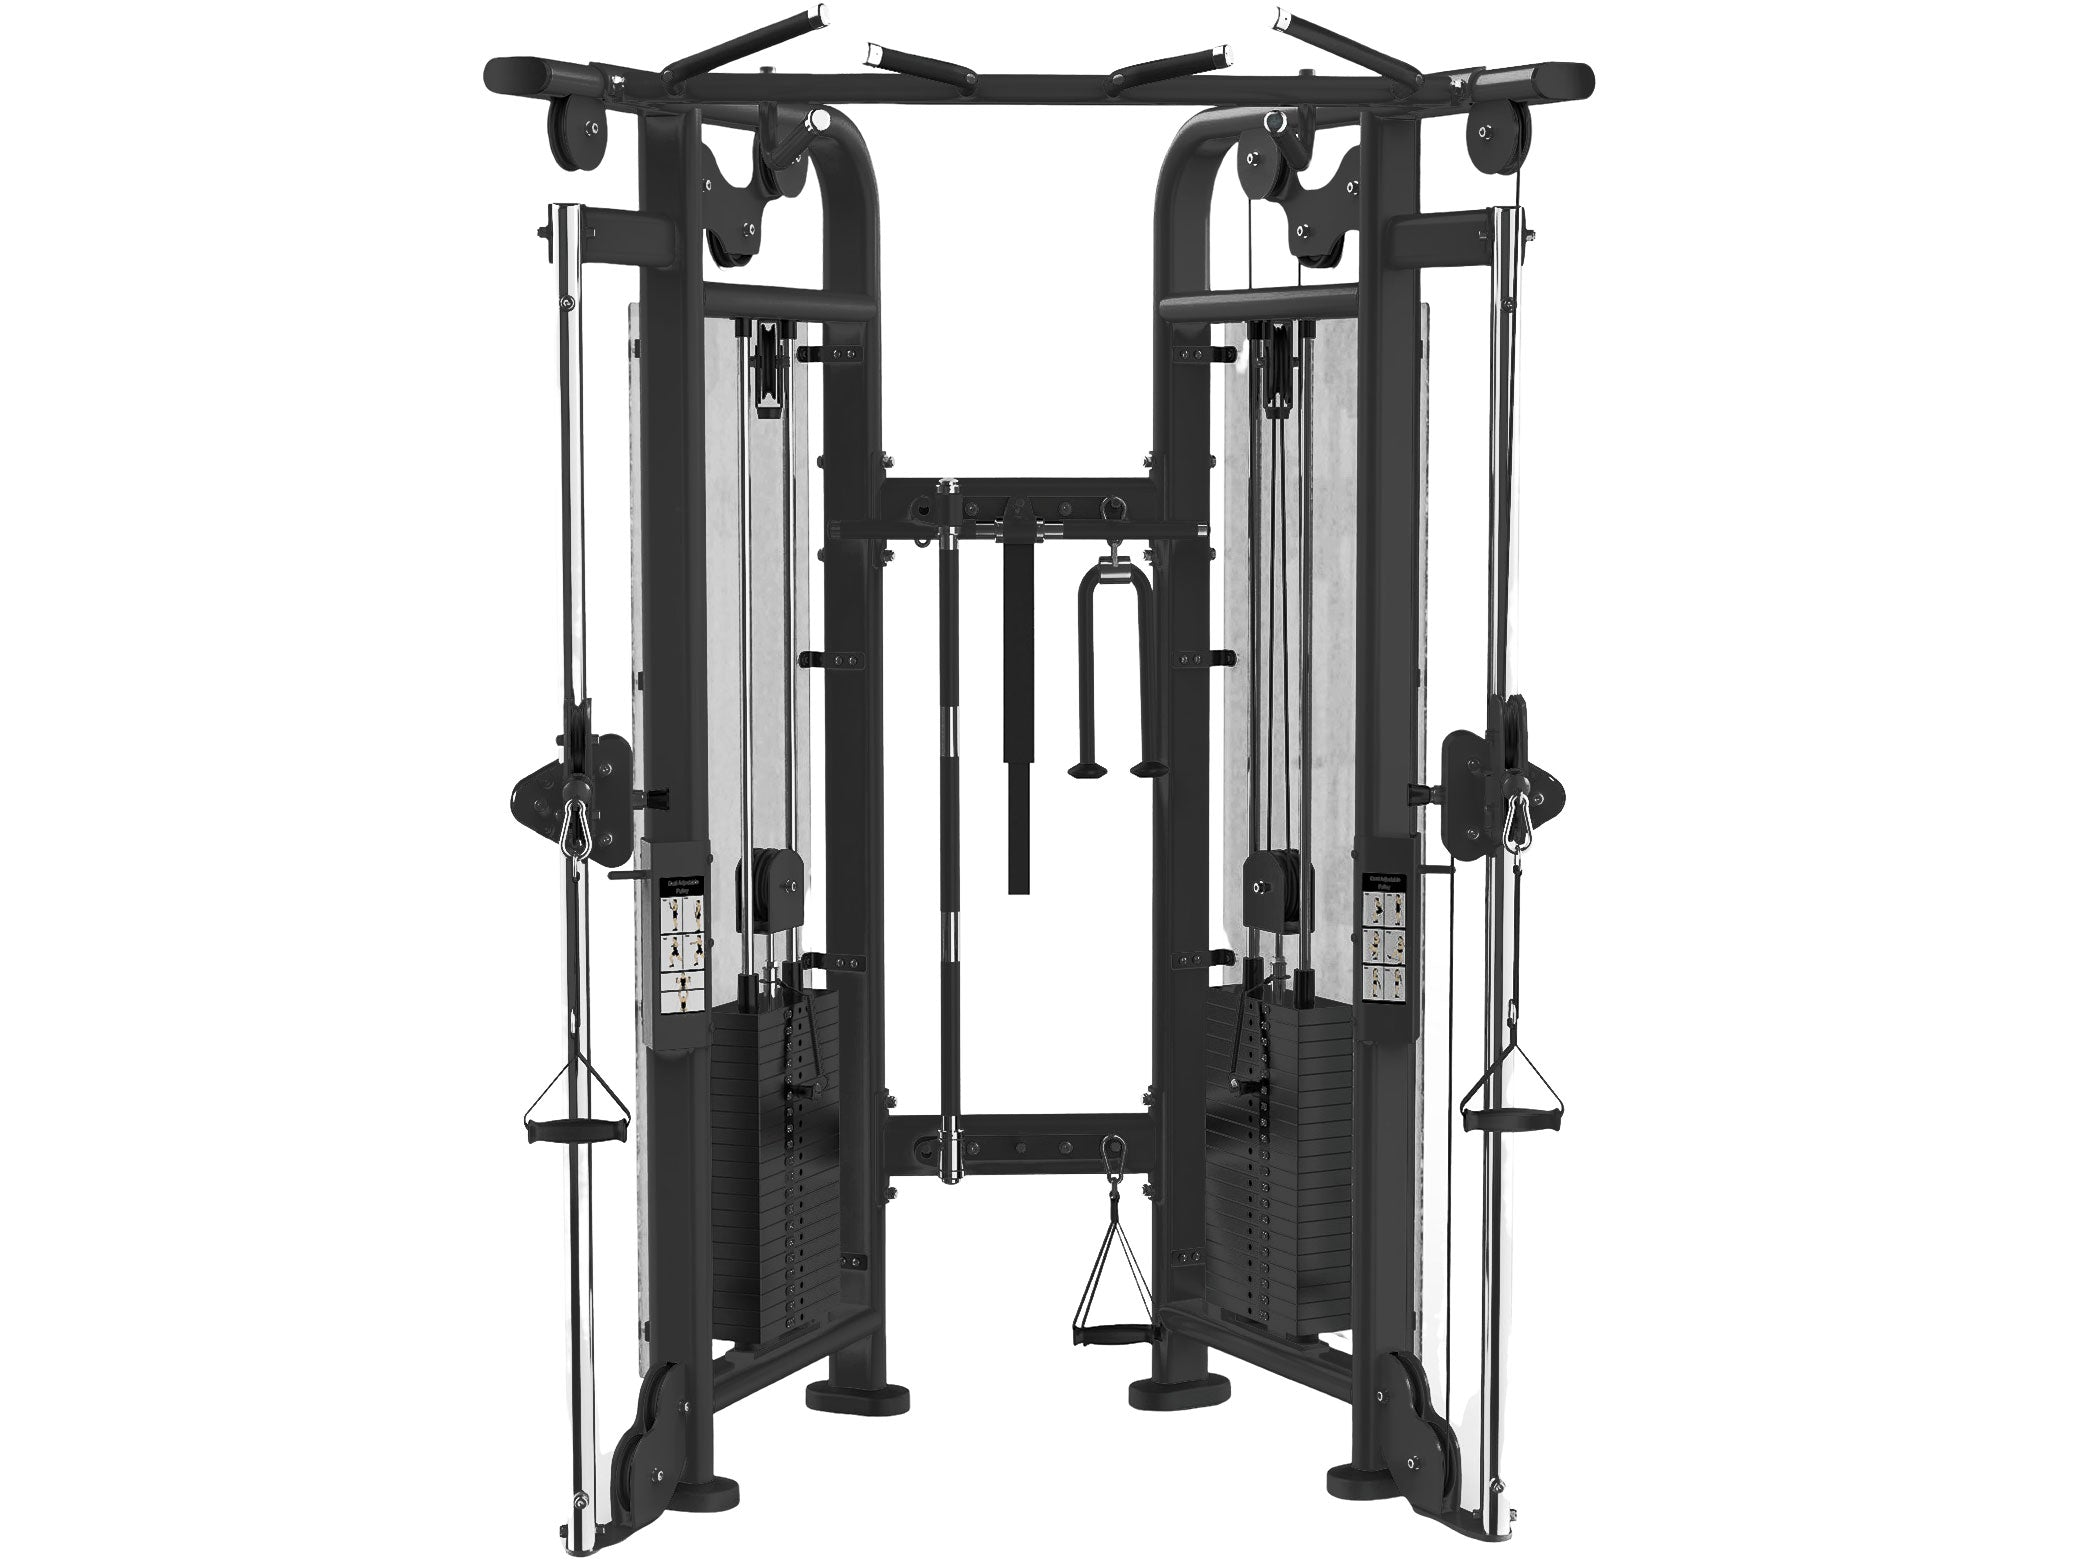 Used Sportgear Dual Adjustable Pulley Functional Trainer 7' Height